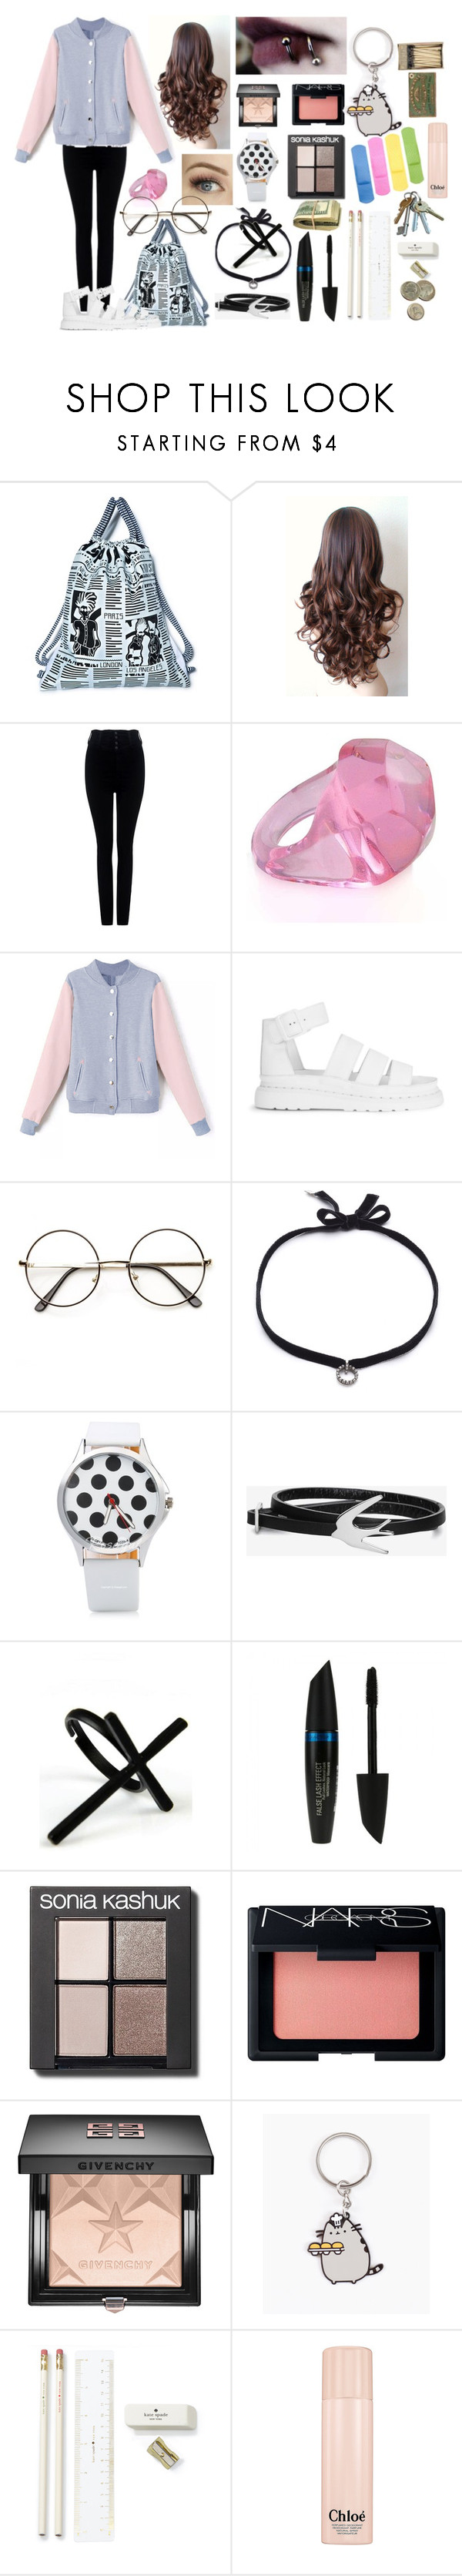 """""""Lets Burn The World..."""" by kayalexi ❤ liked on Polyvore featuring Joyrich, Citizens of Humanity, Dr. Martens, DANNIJO, McQ by Alexander McQueen, Emi Jewellery, Max Factor, Sonia Kashuk, NARS Cosmetics and Givenchy"""